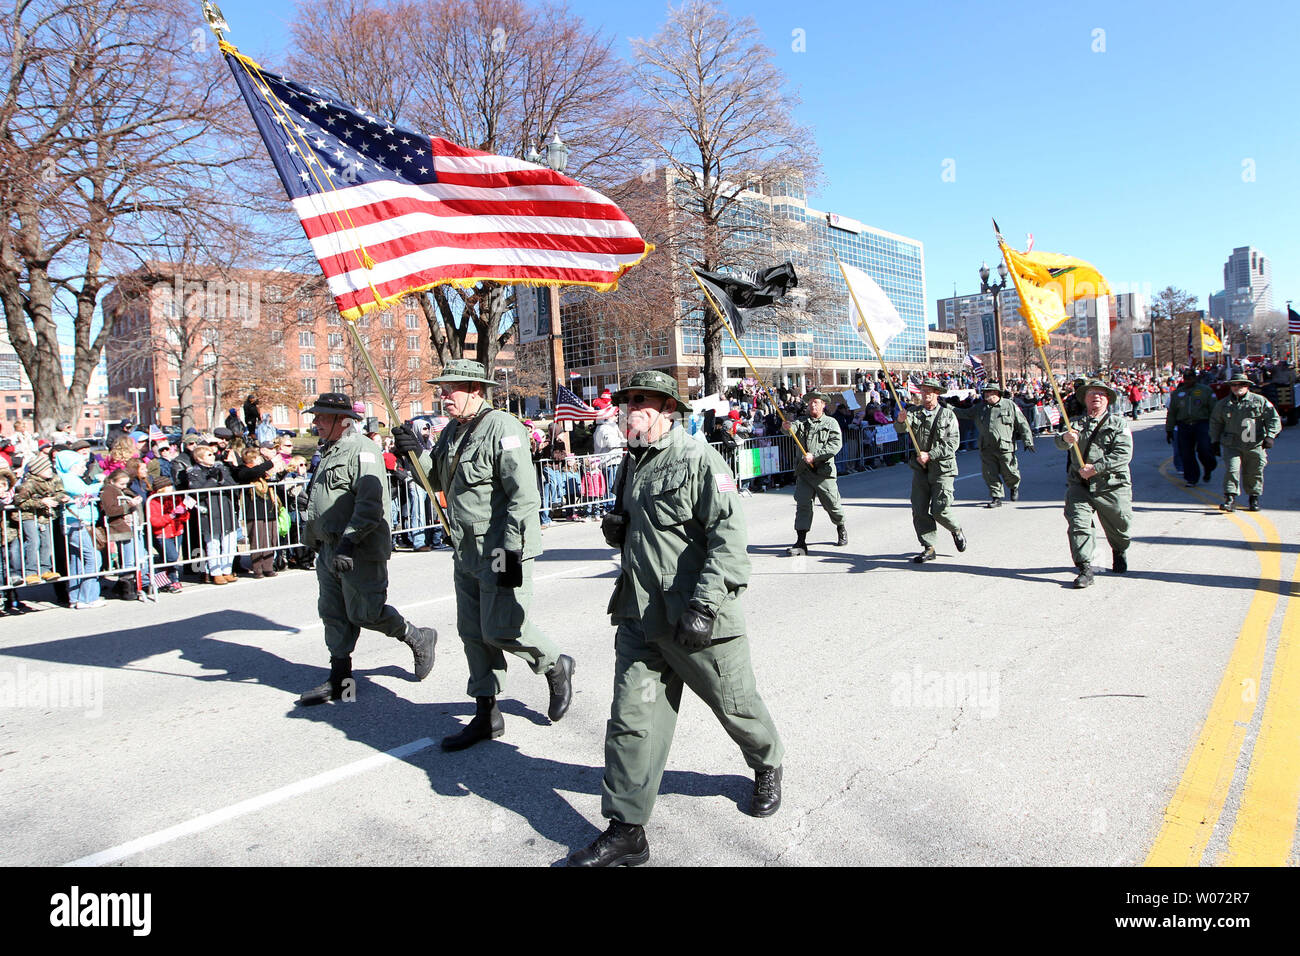 Vietnam veterans march in a parade in St. Louis on January 28, 2012. Thousands of people lined a parade route in downtown St. Louis for the nationÕs first parade to honor those who have served in Iraq and Afghanistan. UPI/Bill Greenblatt - Stock Image